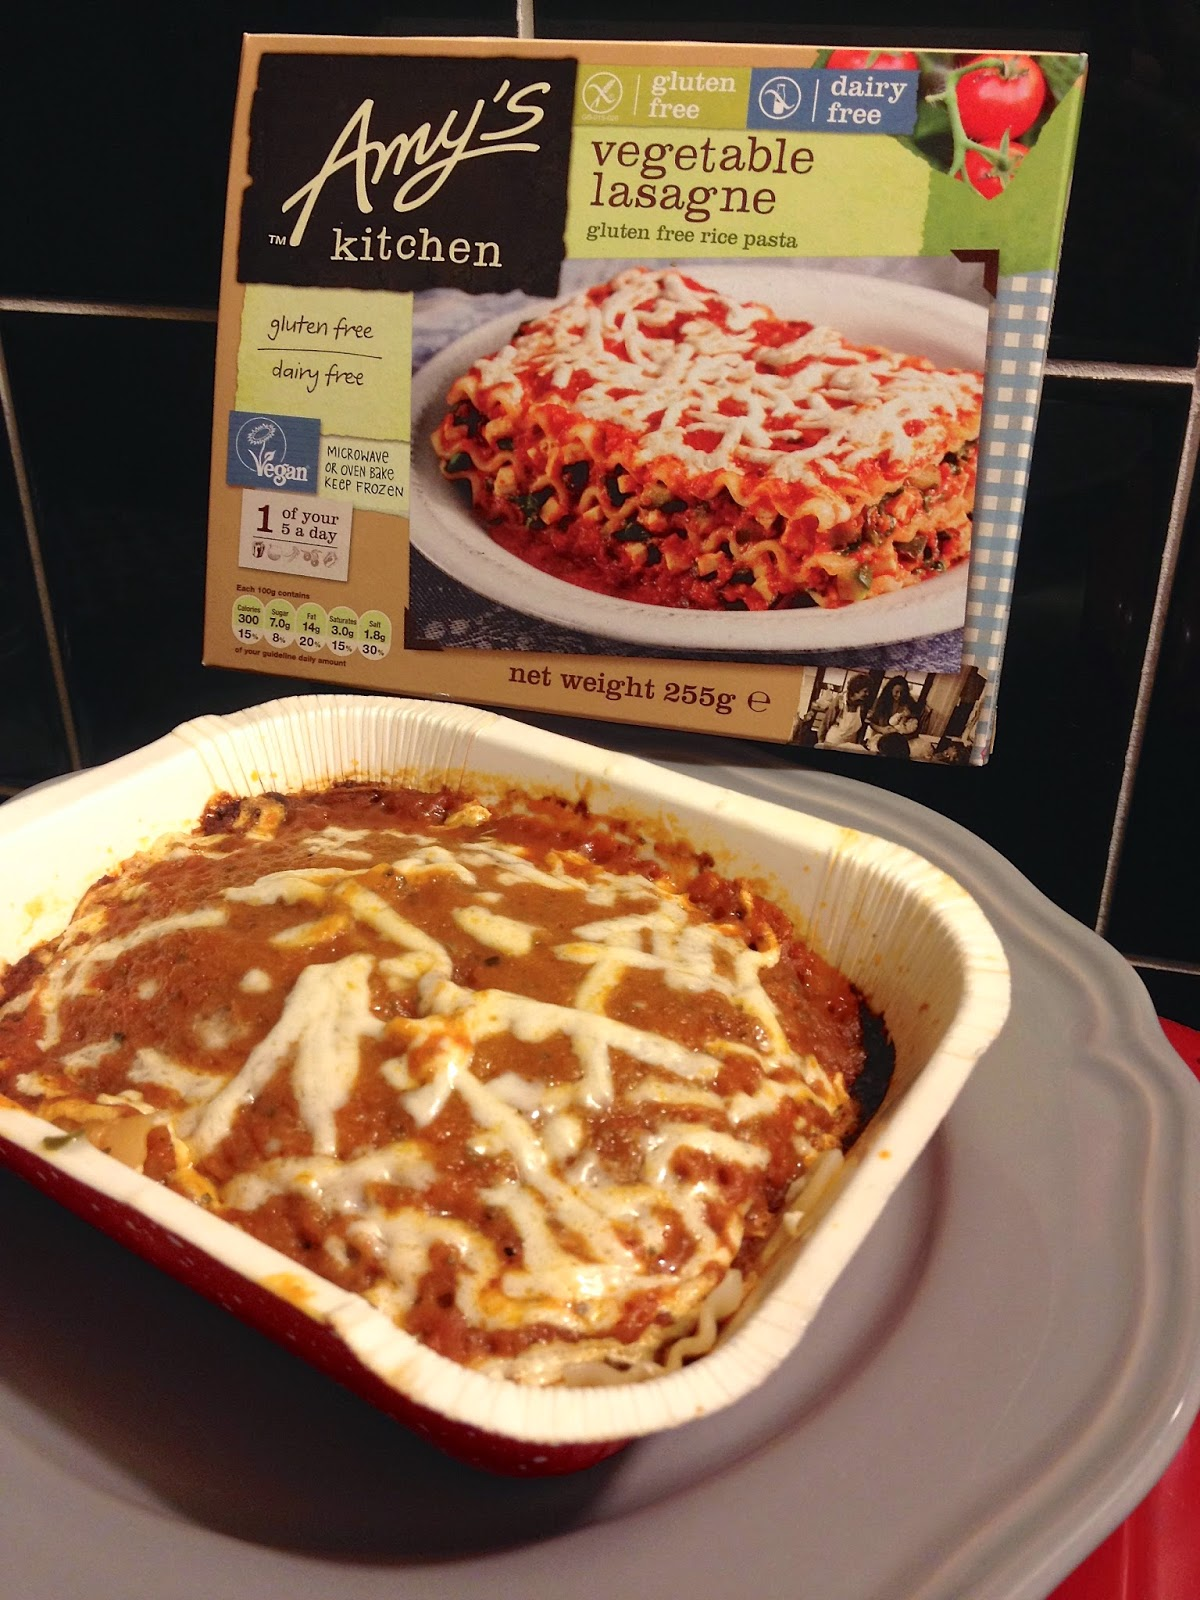 vegan.in.brighton: Amy\'s Kitchen Product Review & Giveaway